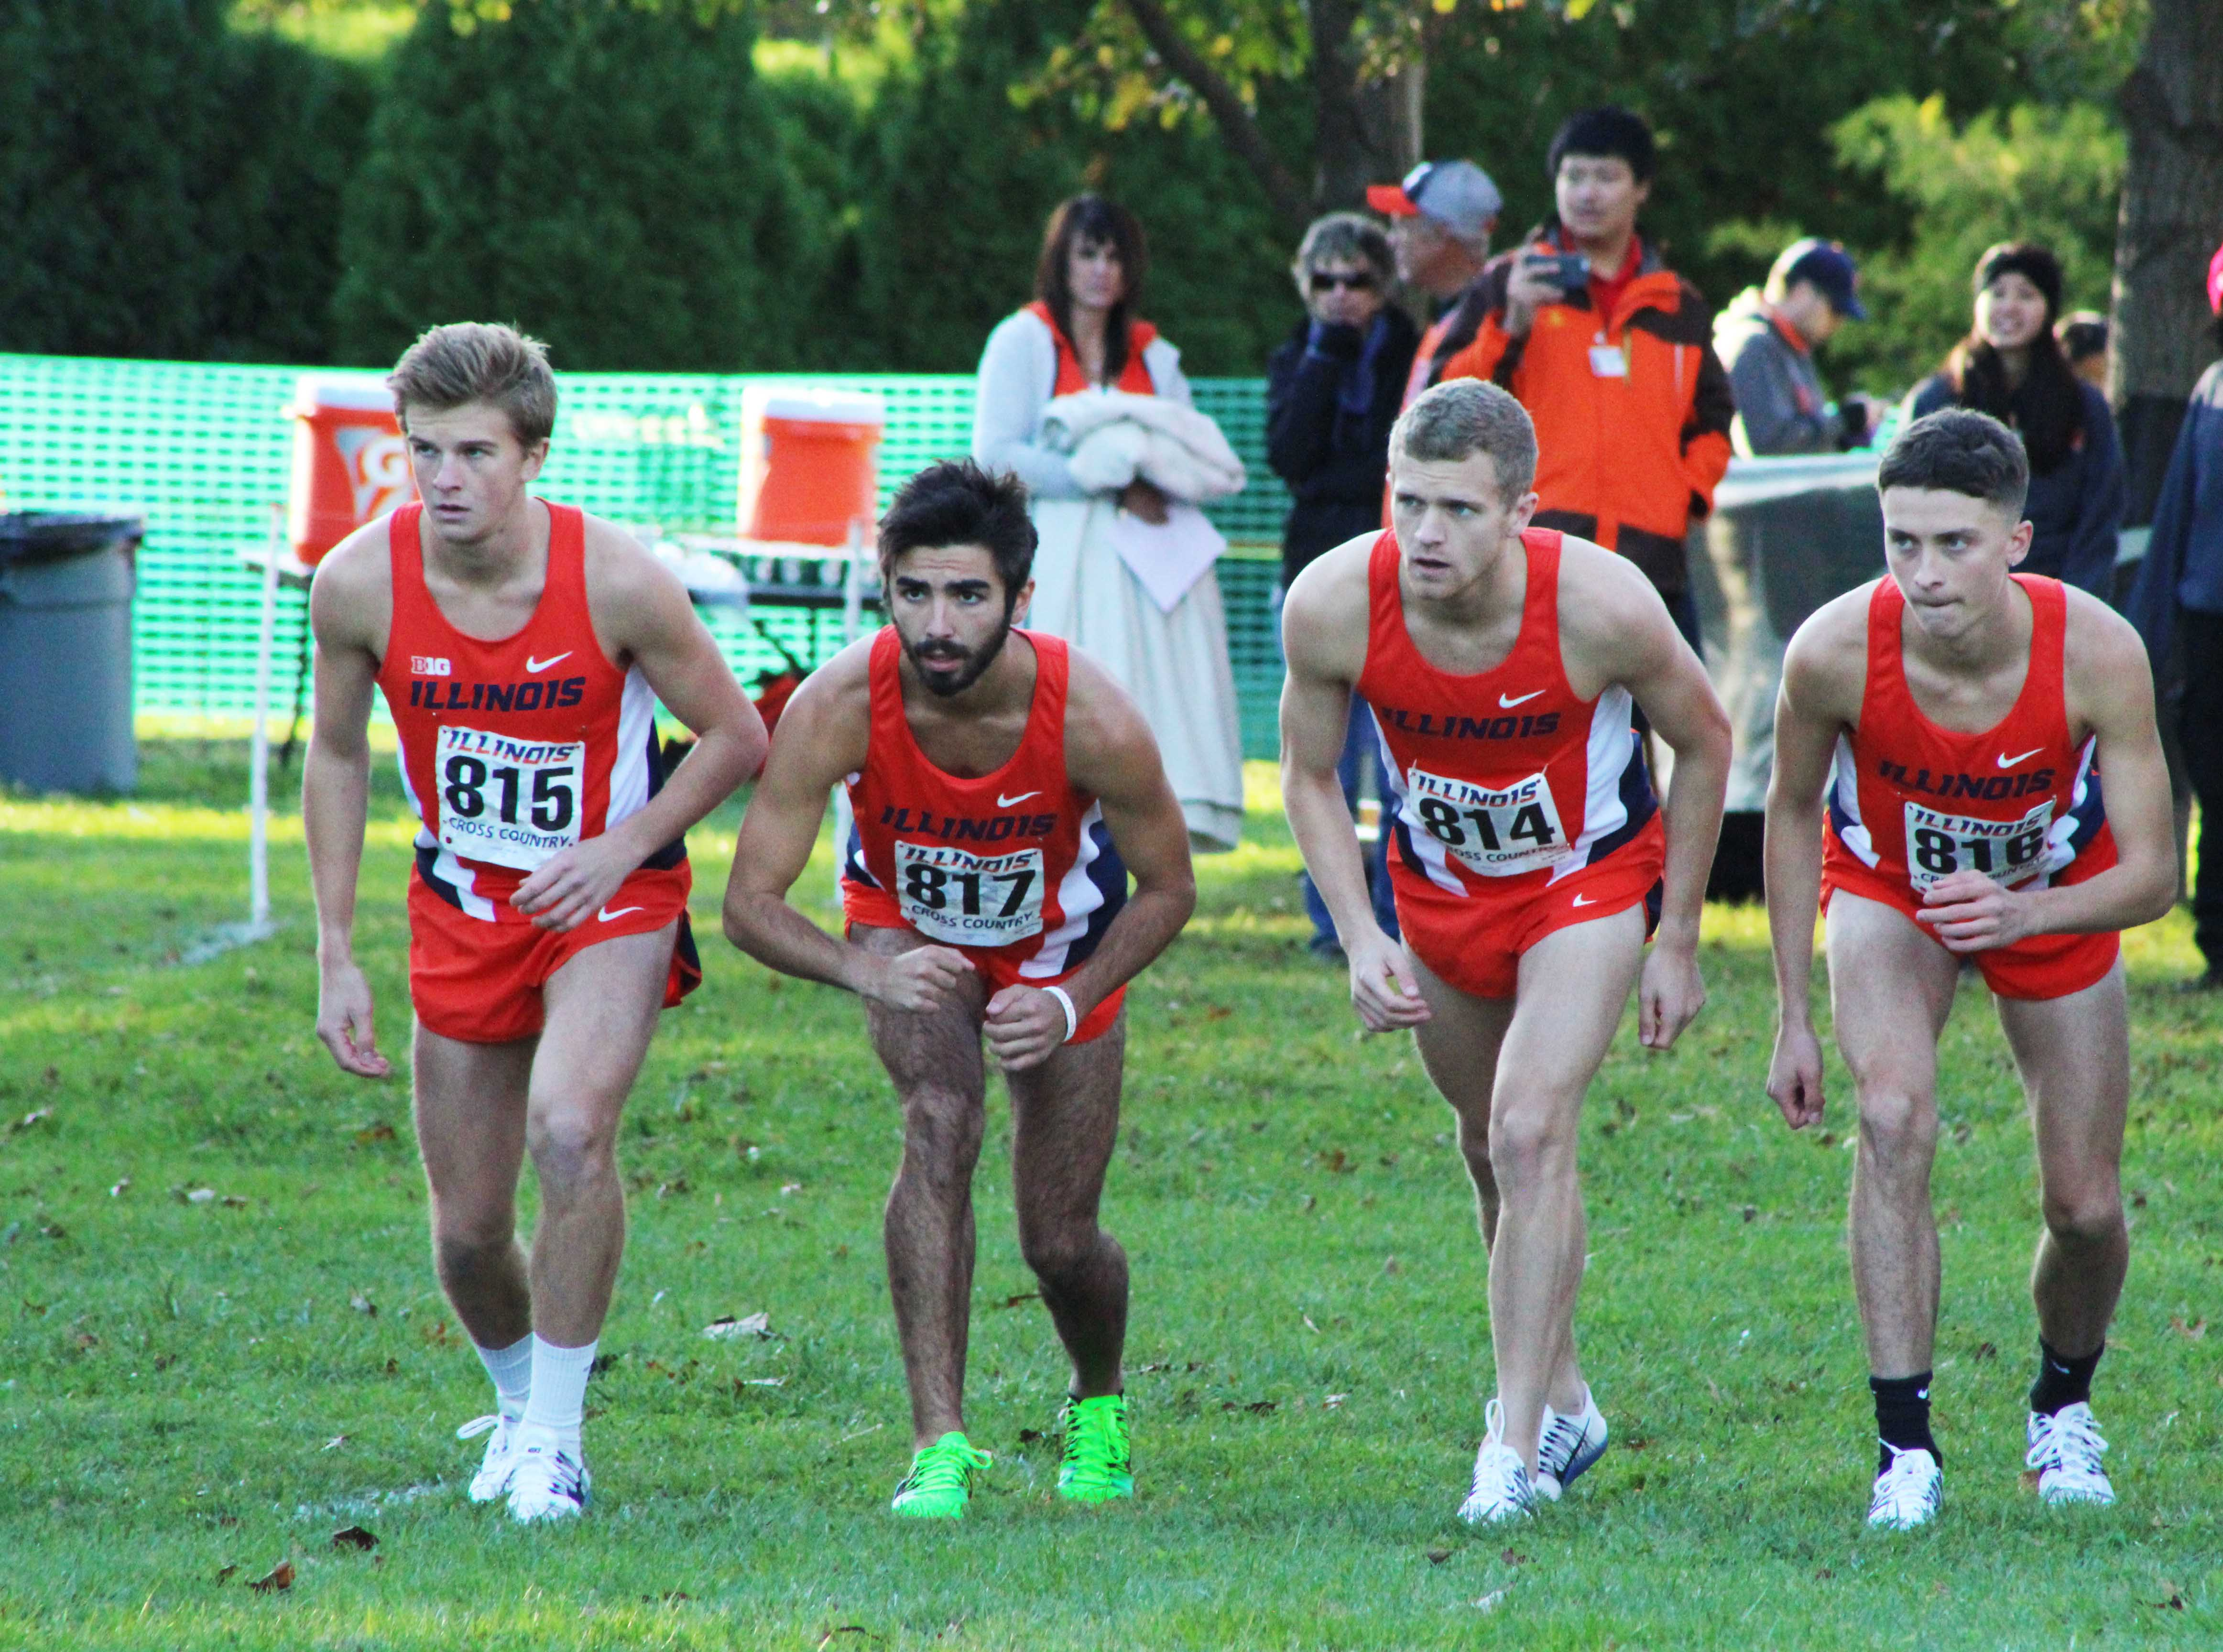 Lining up before the race begins, runners Joe Crowlin, Garrett Lee, Luke Brahm, and Caleb Hummer stand ready to run the Illini Open at the Arboretum on Oct. 21, 2016.